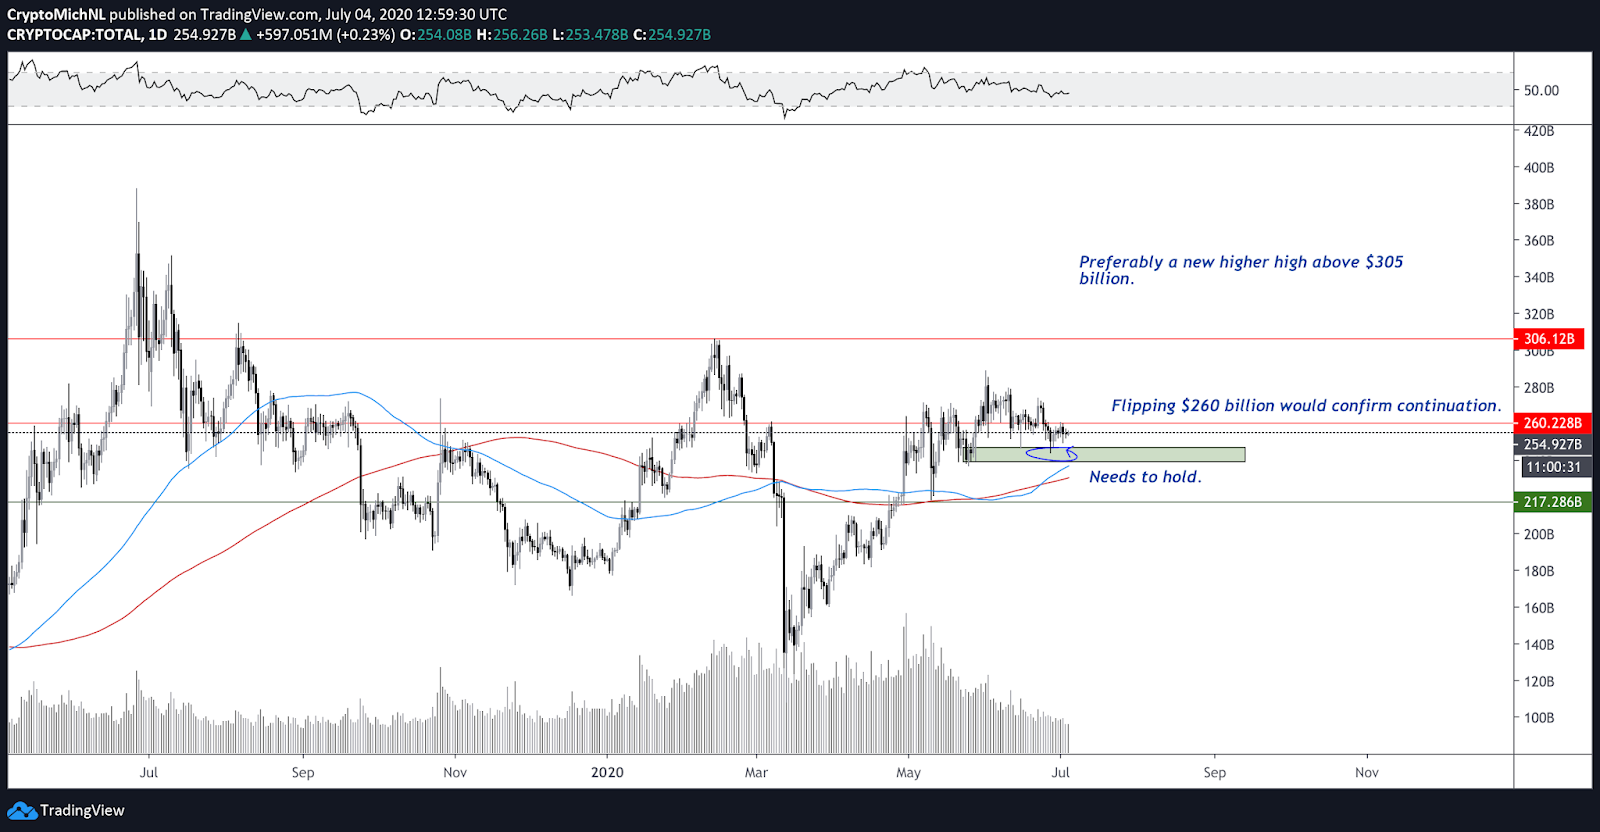 Cryptocurrency with total market capitalization 1-day chart. Source: TradingView